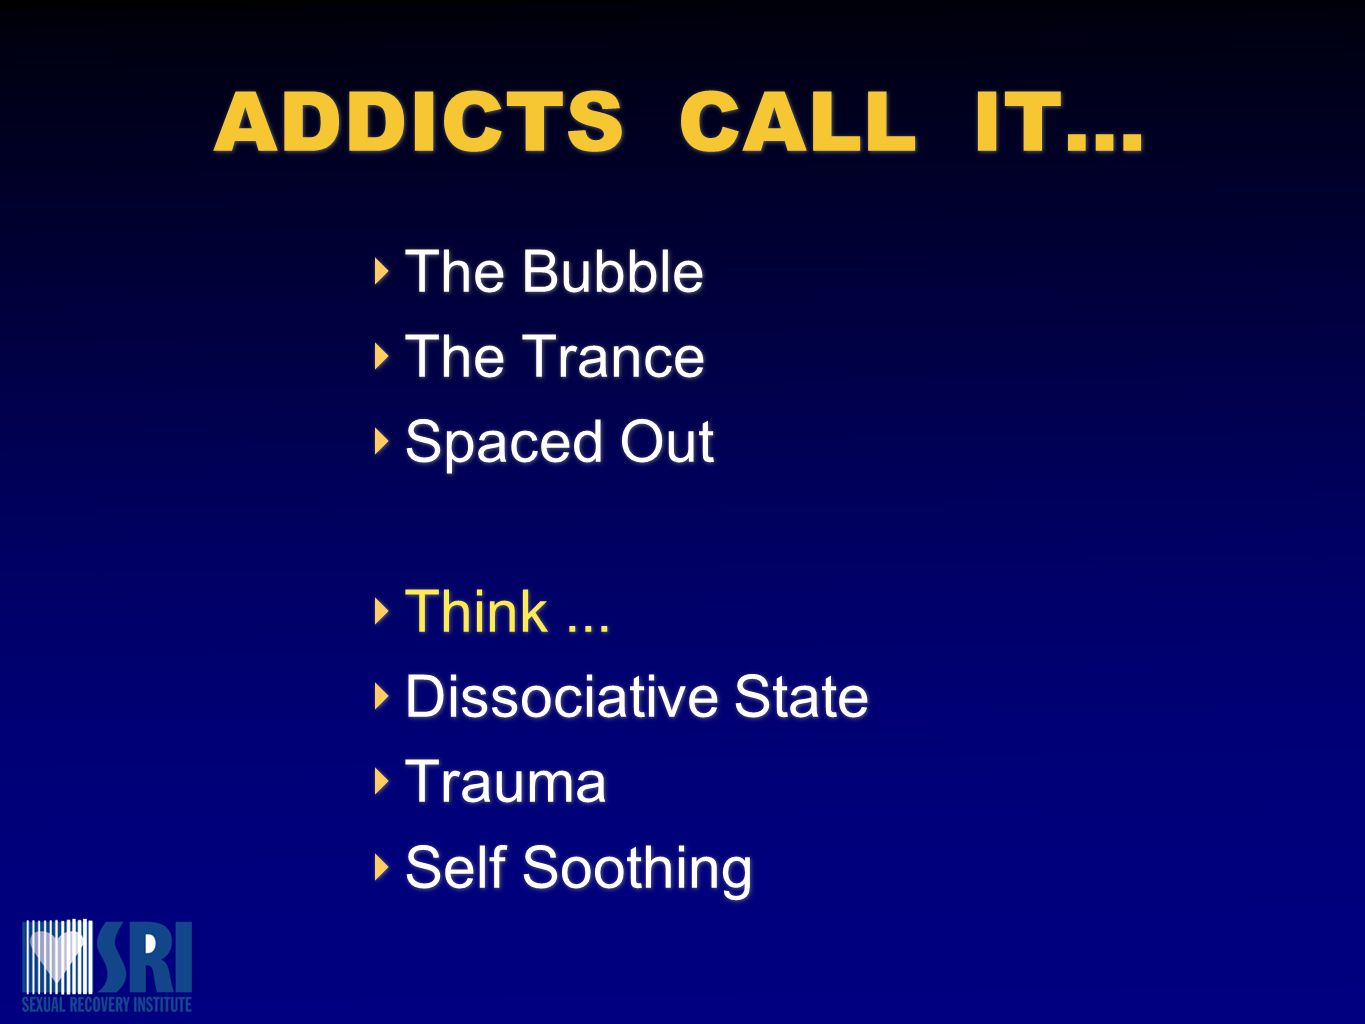 ADDICTS CALL IT… The Bubble The Trance Spaced Out Think... Dissociative State Trauma Self Soothing The Bubble The Trance Spaced Out Think... Dissociat